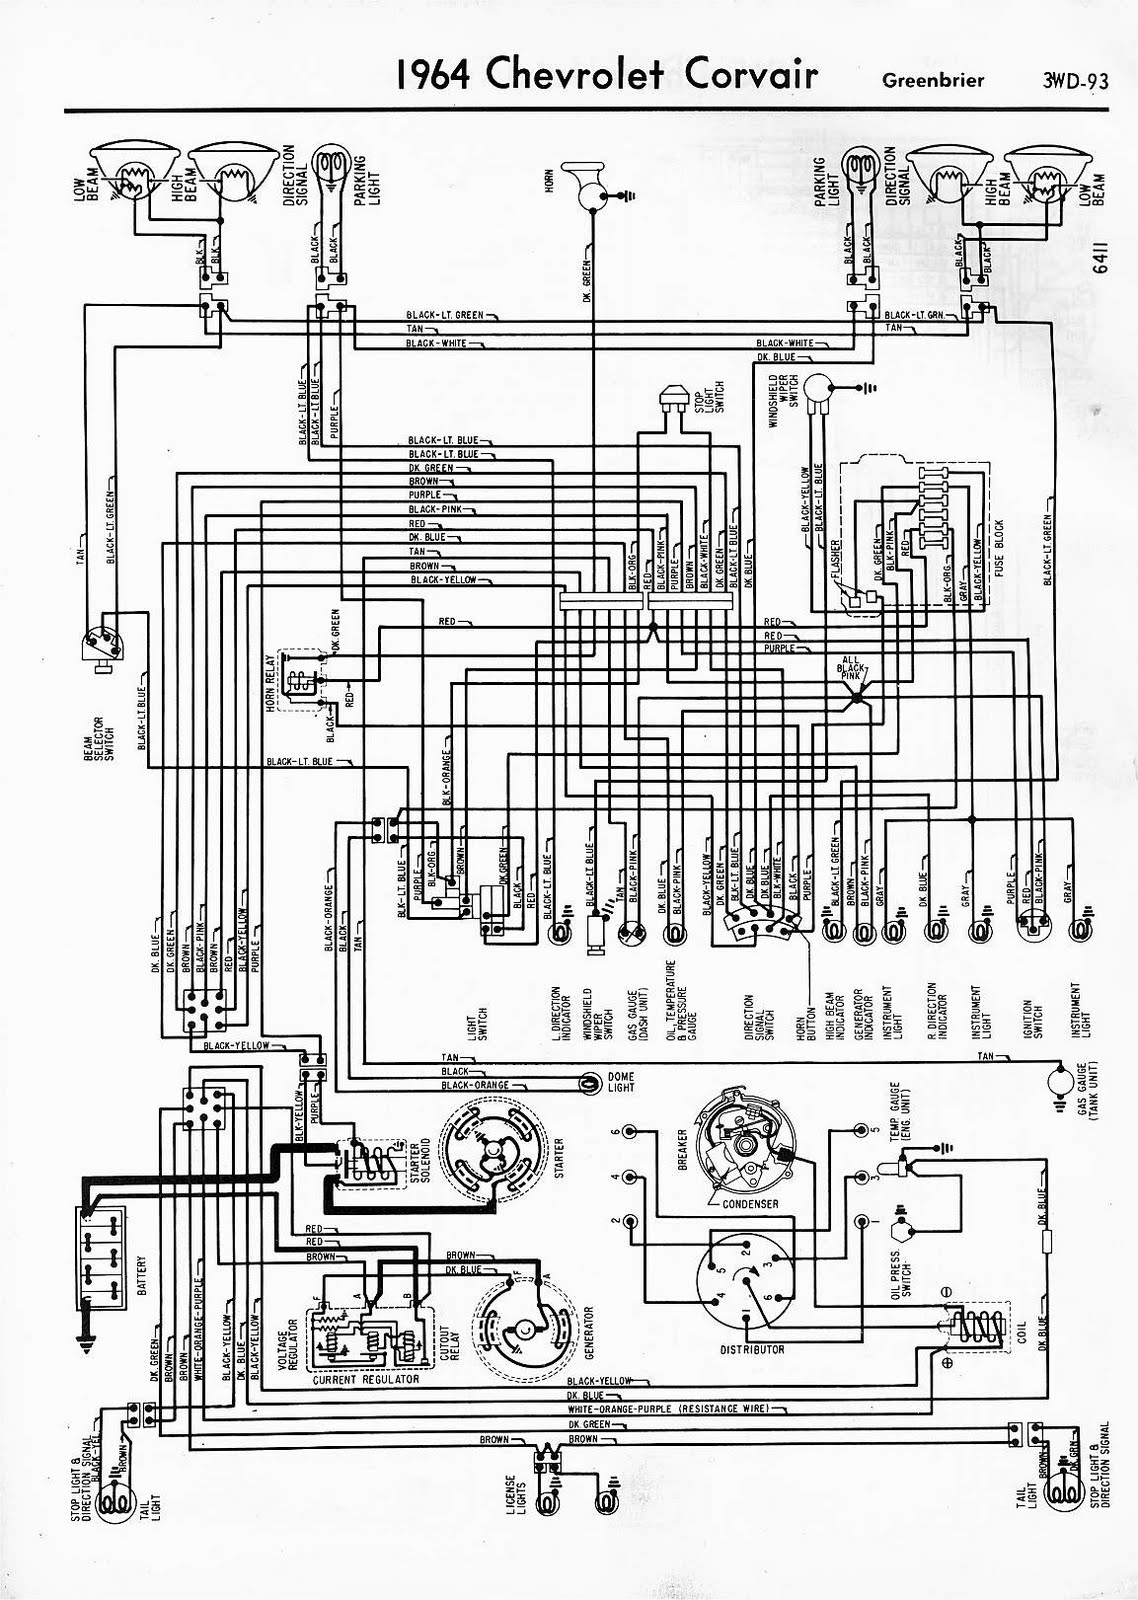 Free Auto Wiring Diagram  1964 Chevrolet Corvair Greenbrier Wiring Diagram